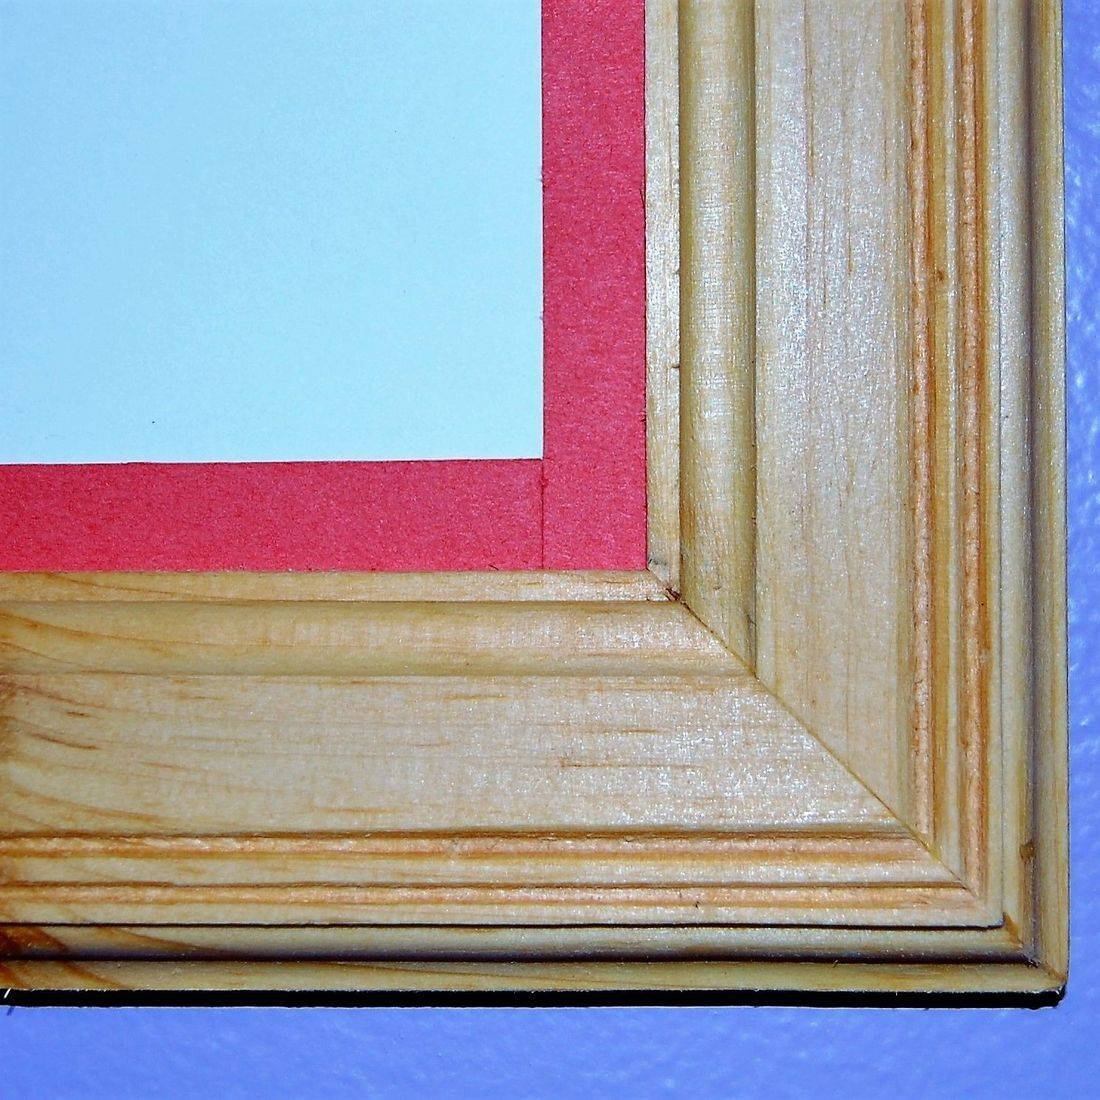 Edge of a wooden frame